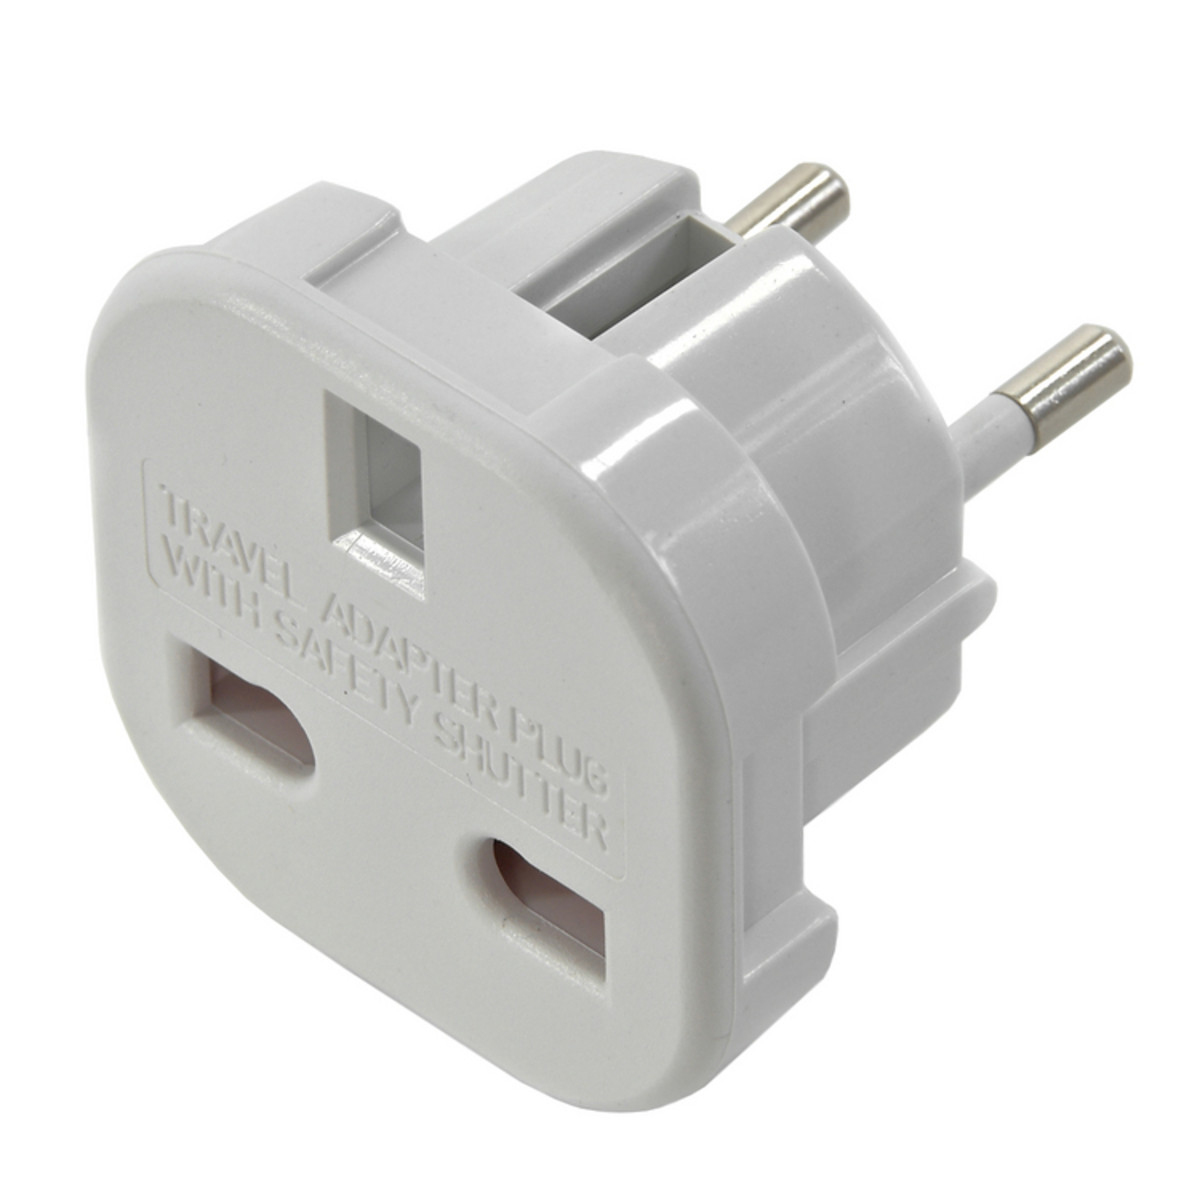 Travel Adapter Eu To Uk Uk Eu Power Adaptor By Gear4music